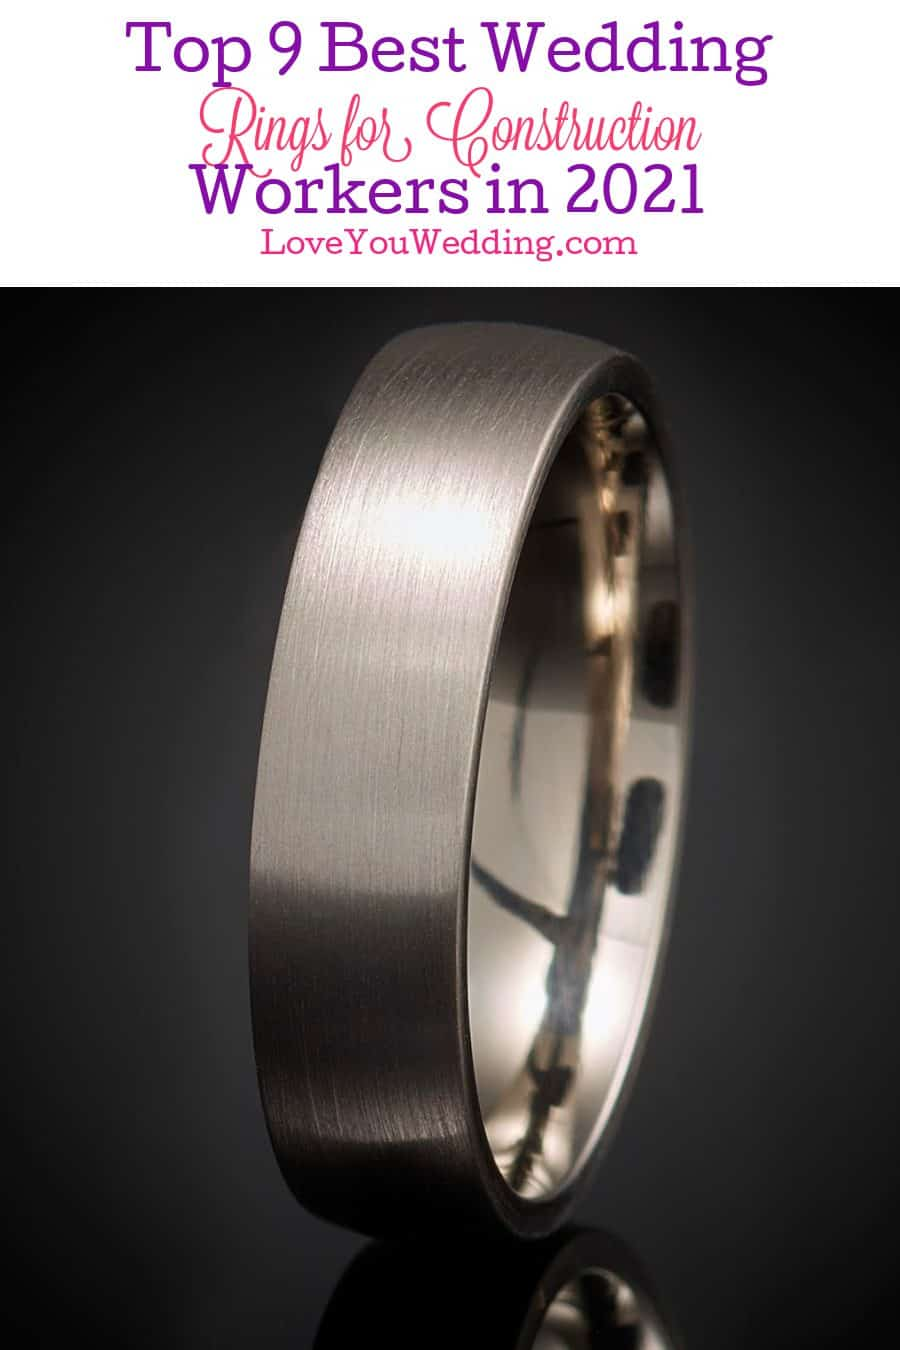 Looking for the wedding rings for construction workers? How about for mechanics or welders? We've got you covered! Check out our top picks!